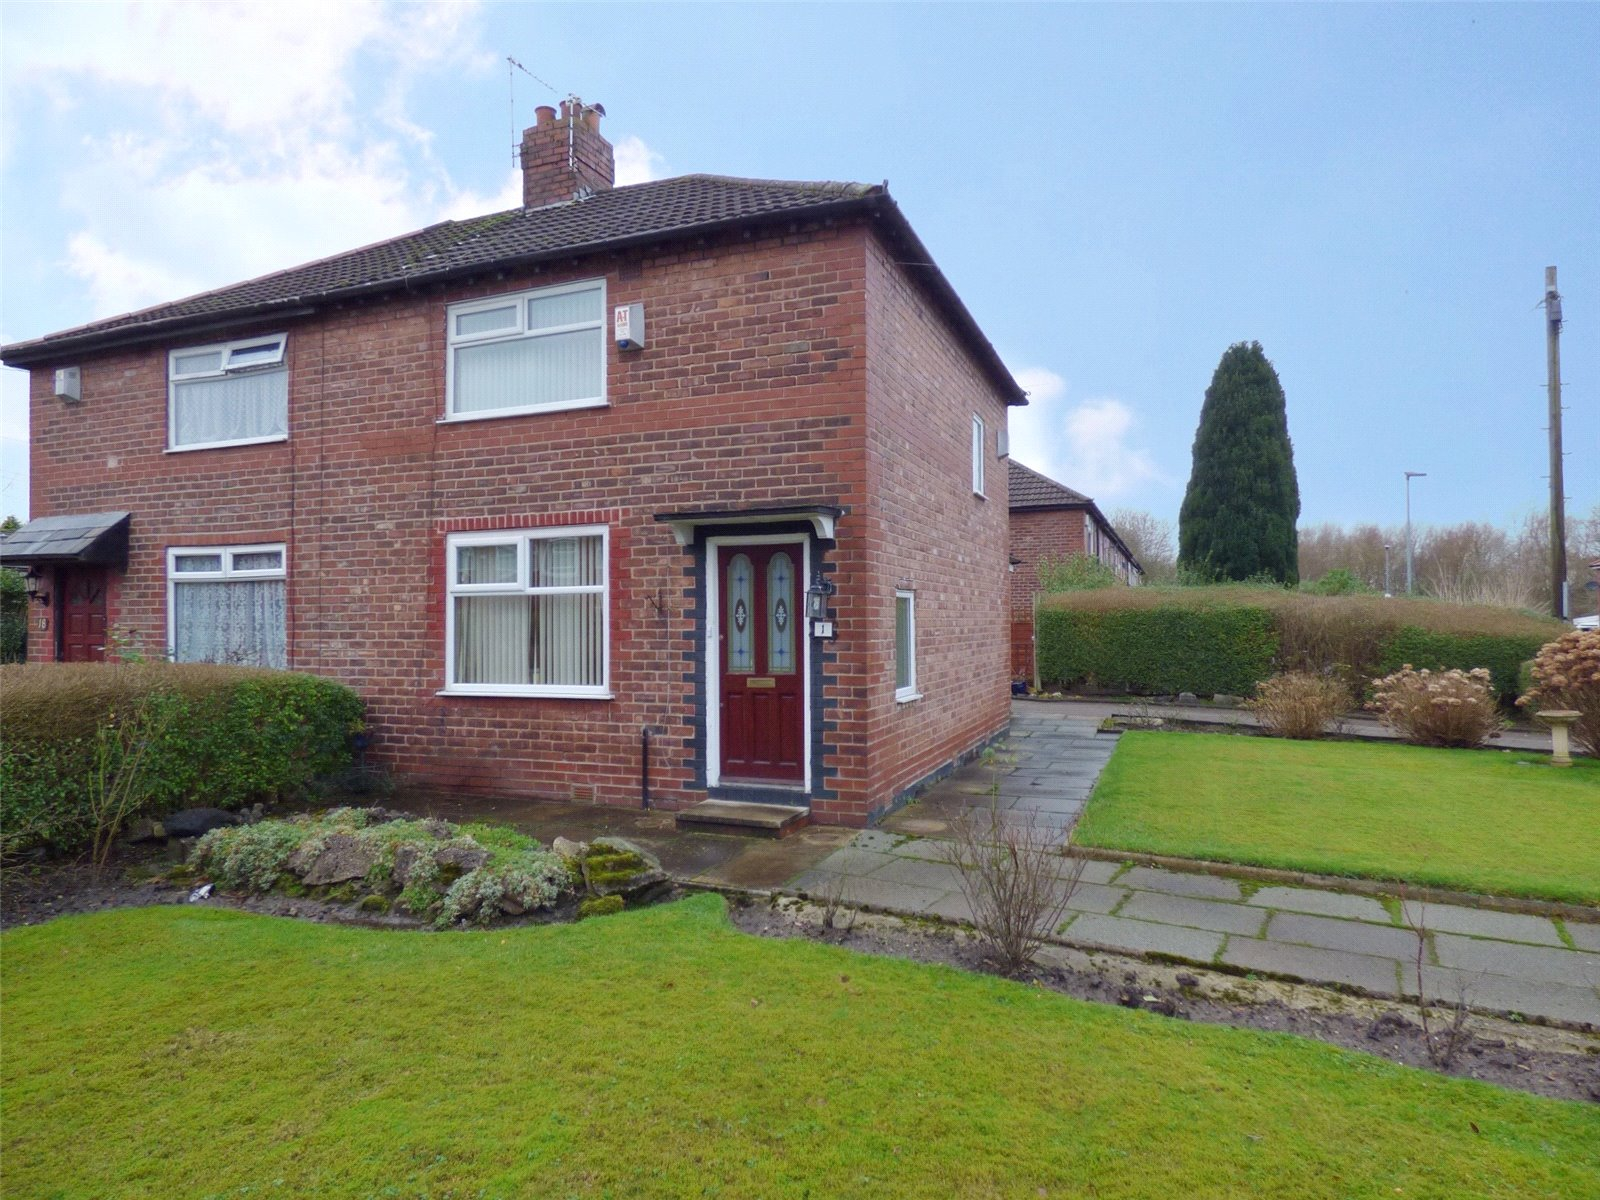 2 Bedrooms Semi Detached House for sale in Grindall Avenue, Moston, Manchester, M40